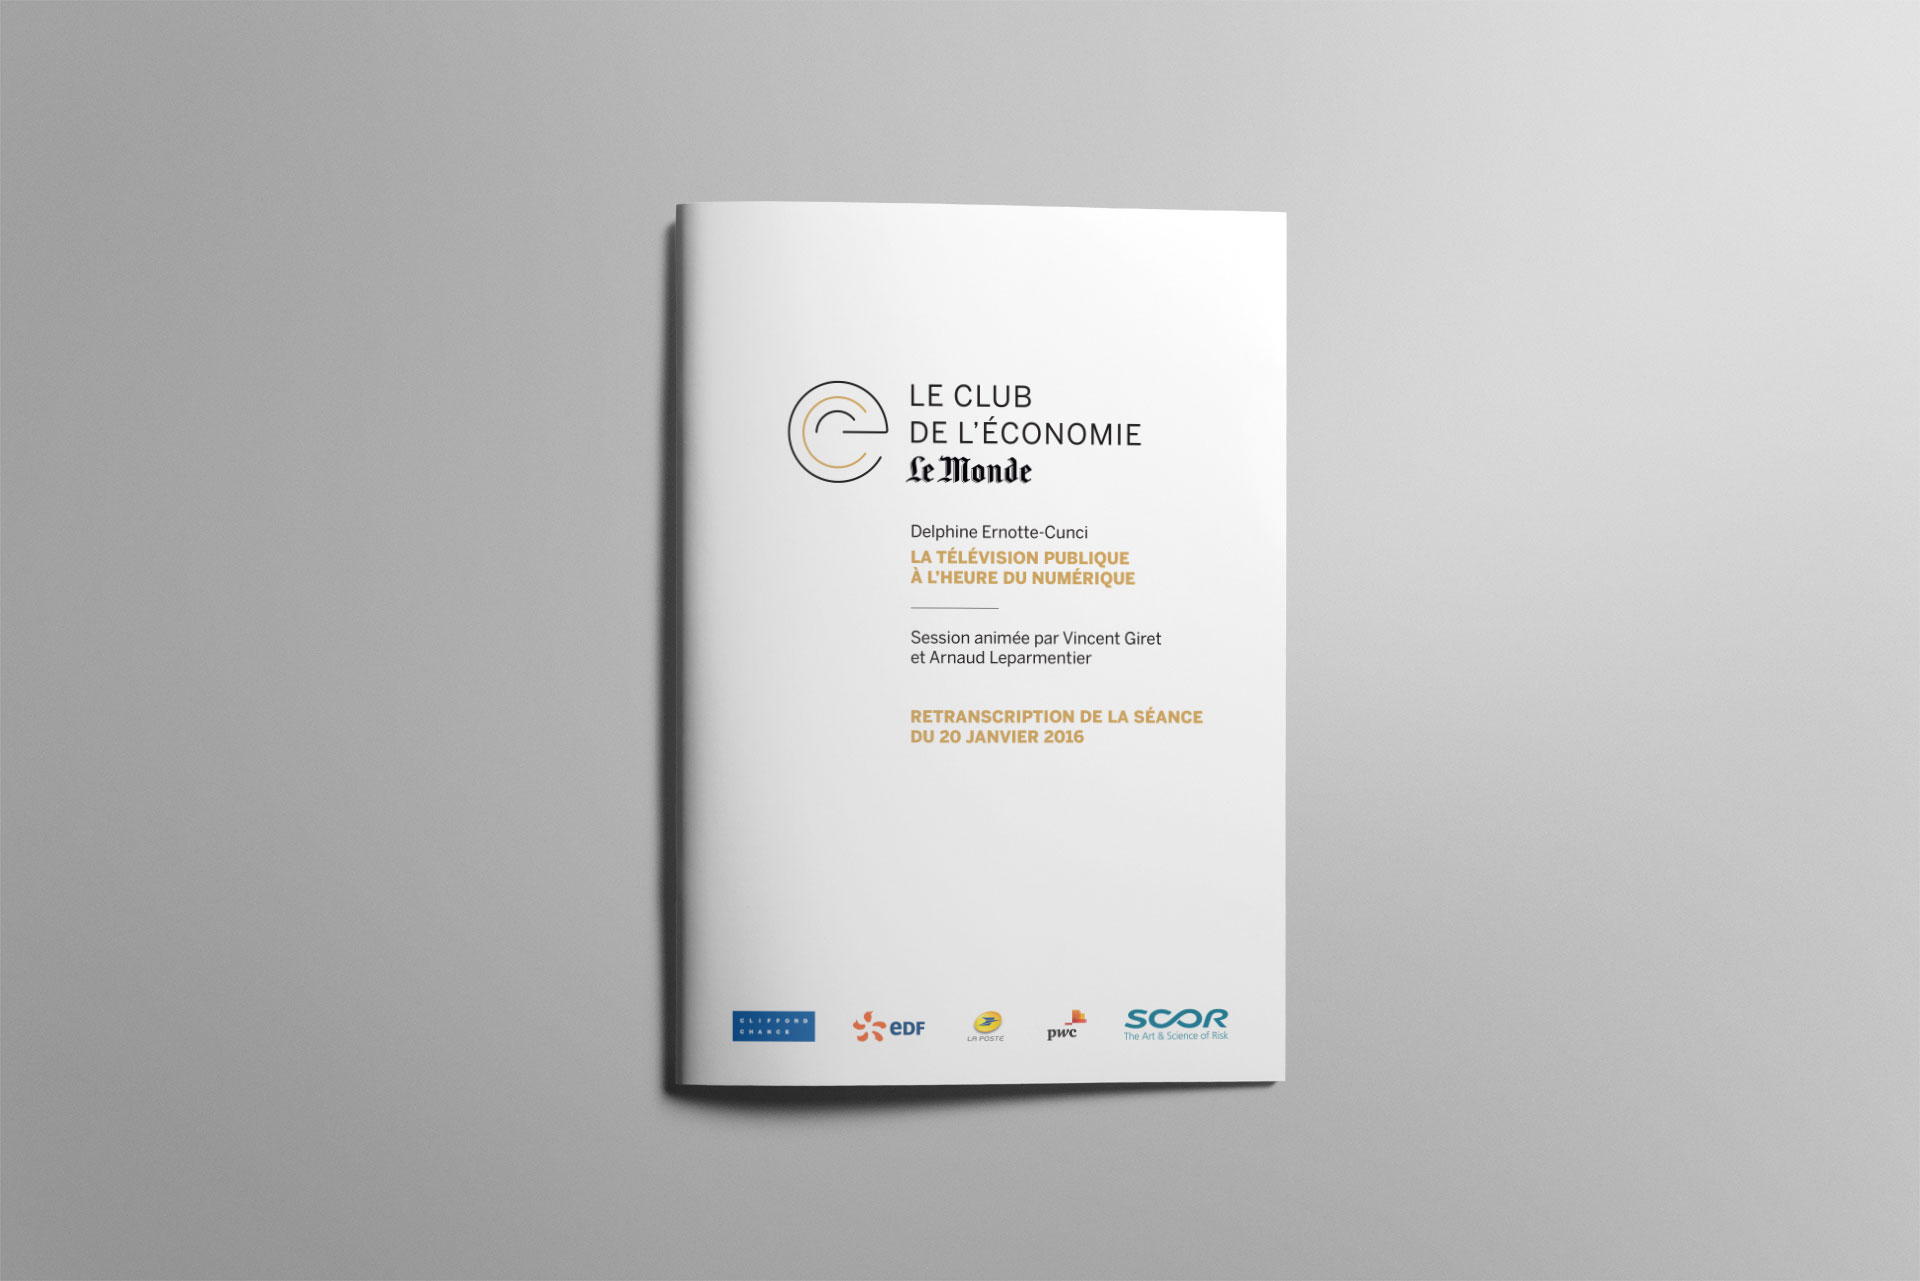 lcde-rapport-00